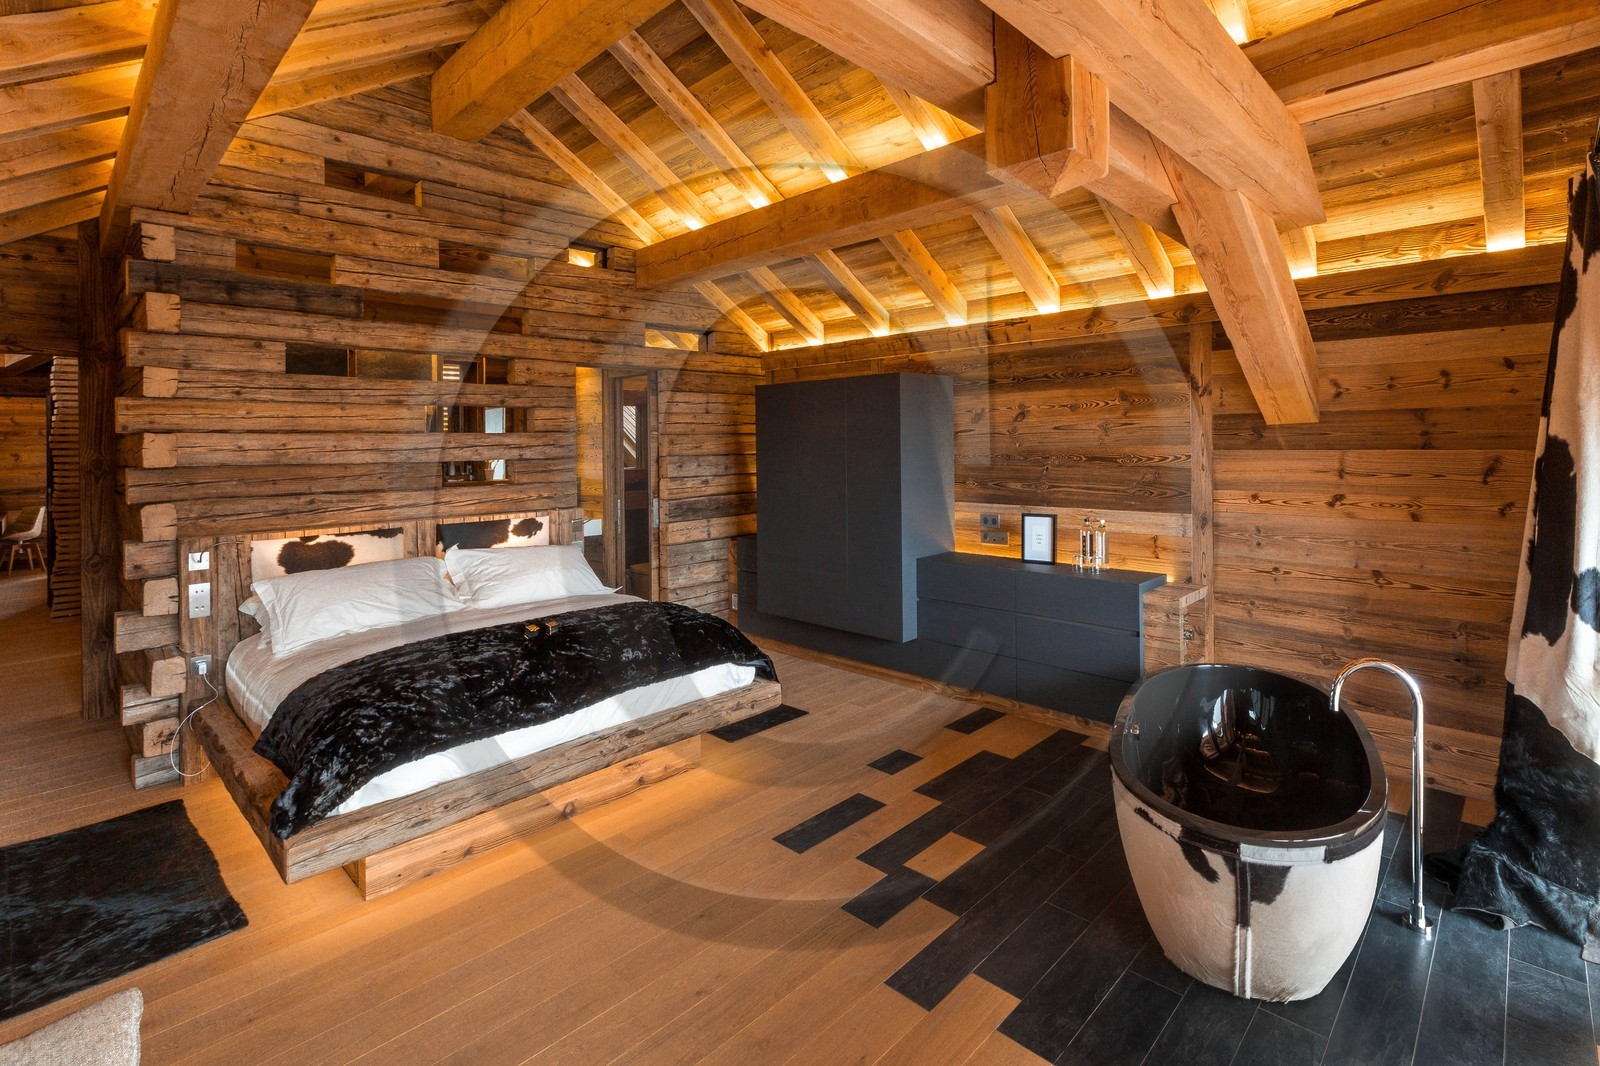 serre chevalier chalet montagnole remi mouilleron architecte d 39 int rieur phototh que photos. Black Bedroom Furniture Sets. Home Design Ideas